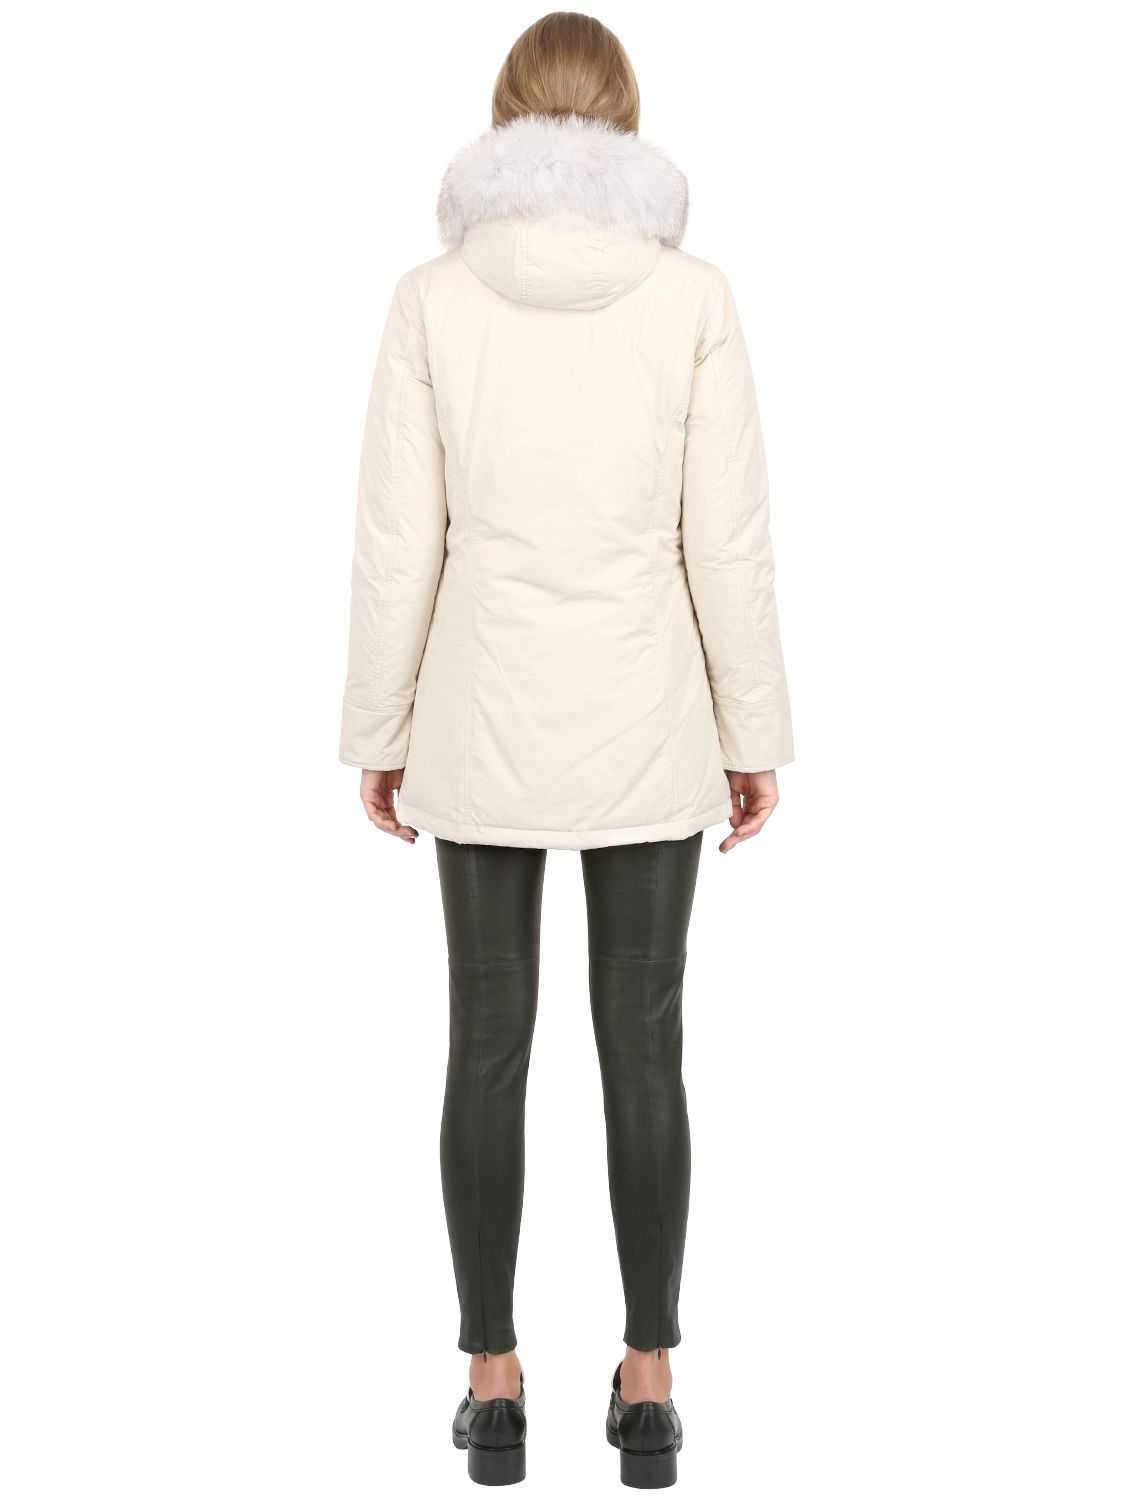 woolrich shape memory luxury arctic parka in white lyst. Black Bedroom Furniture Sets. Home Design Ideas